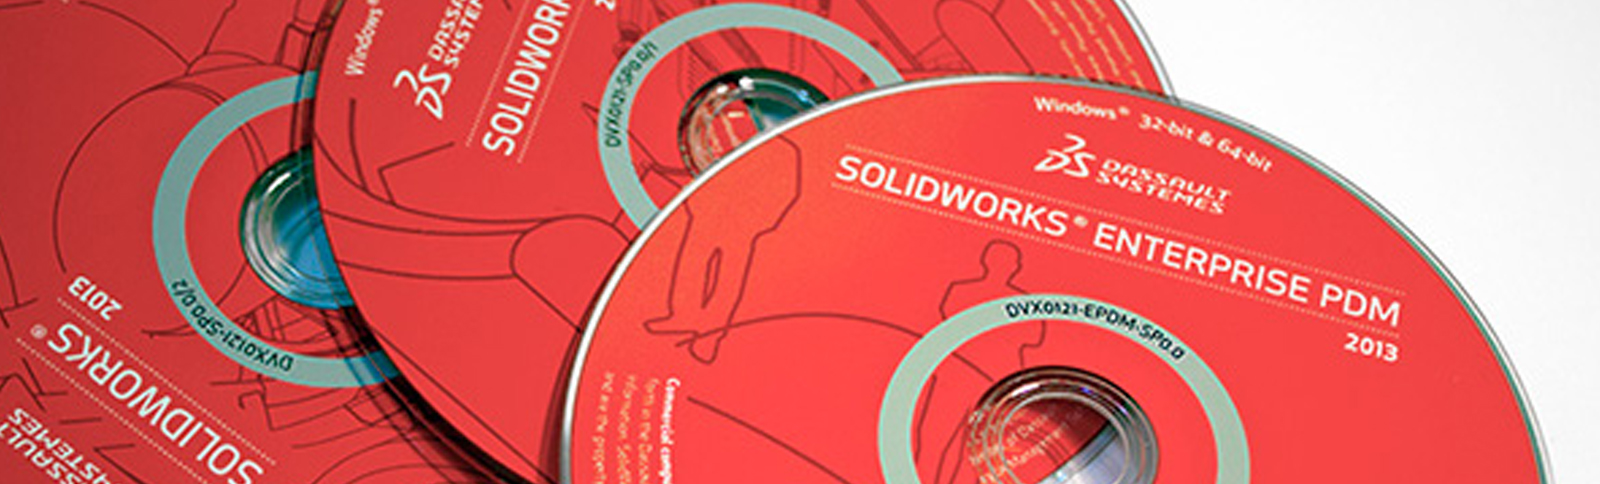 cd duplication in oxfordshire uk